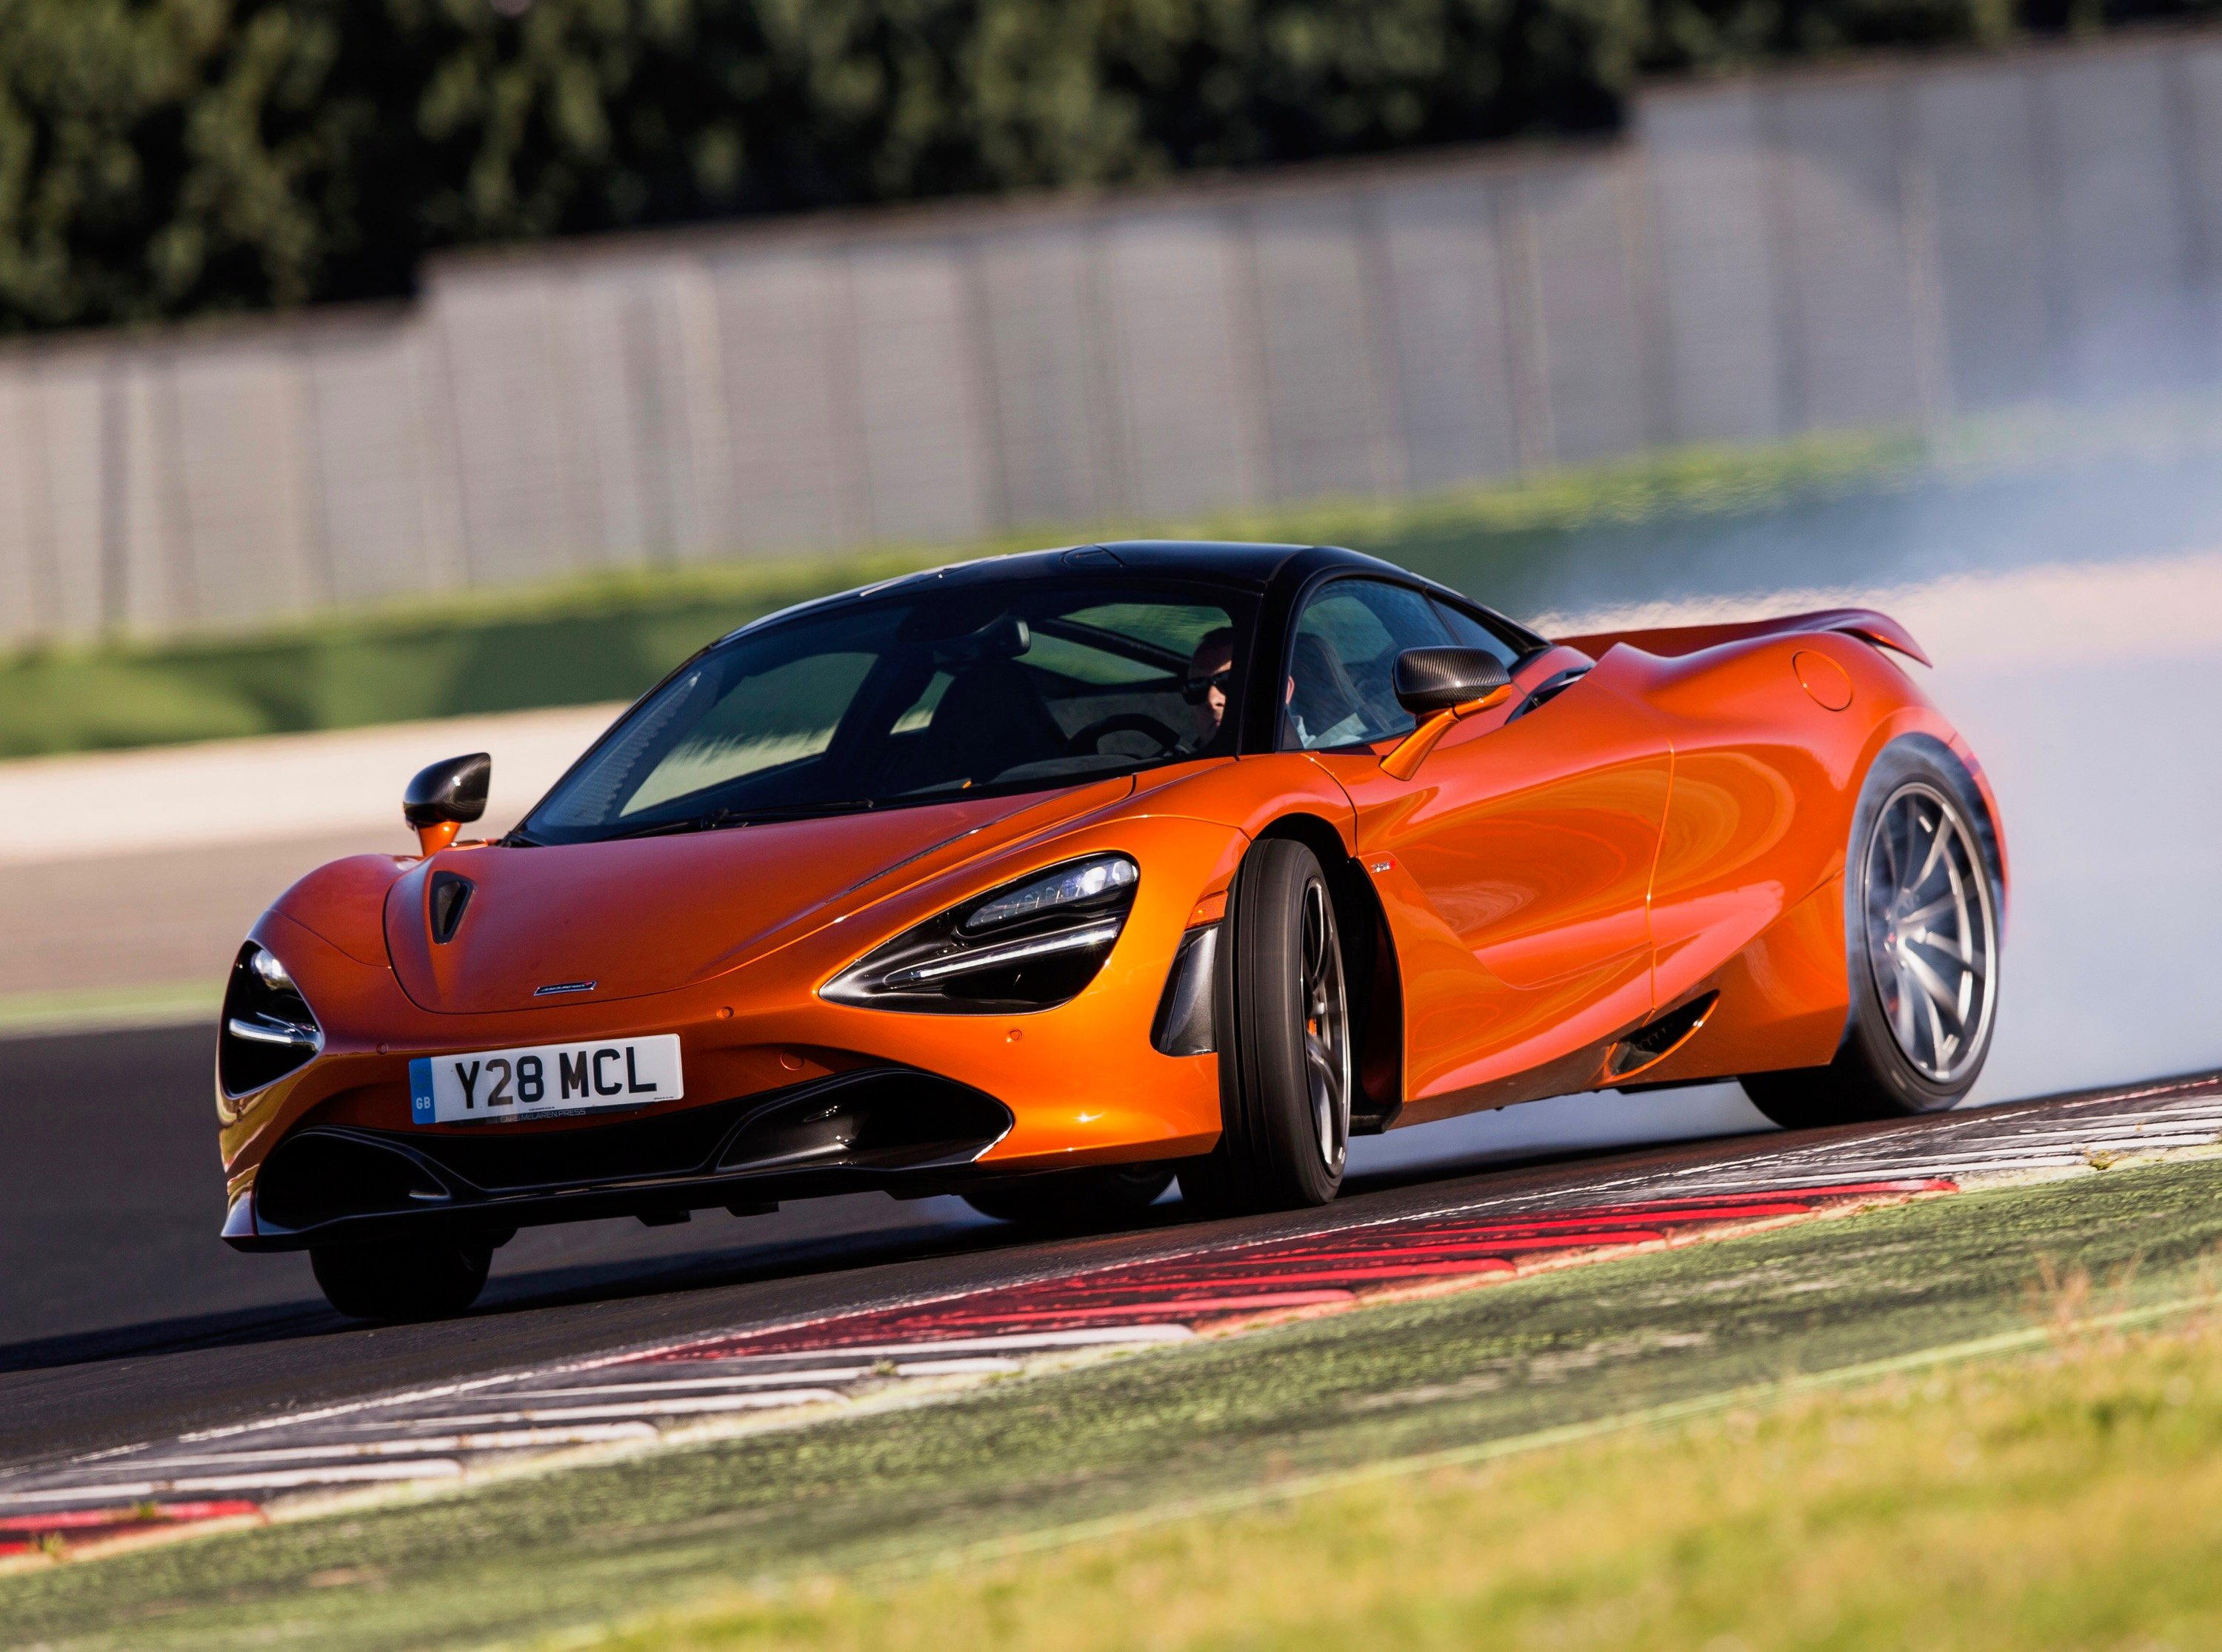 McLaren 720S is a level above rivals, says McLaren boss ...